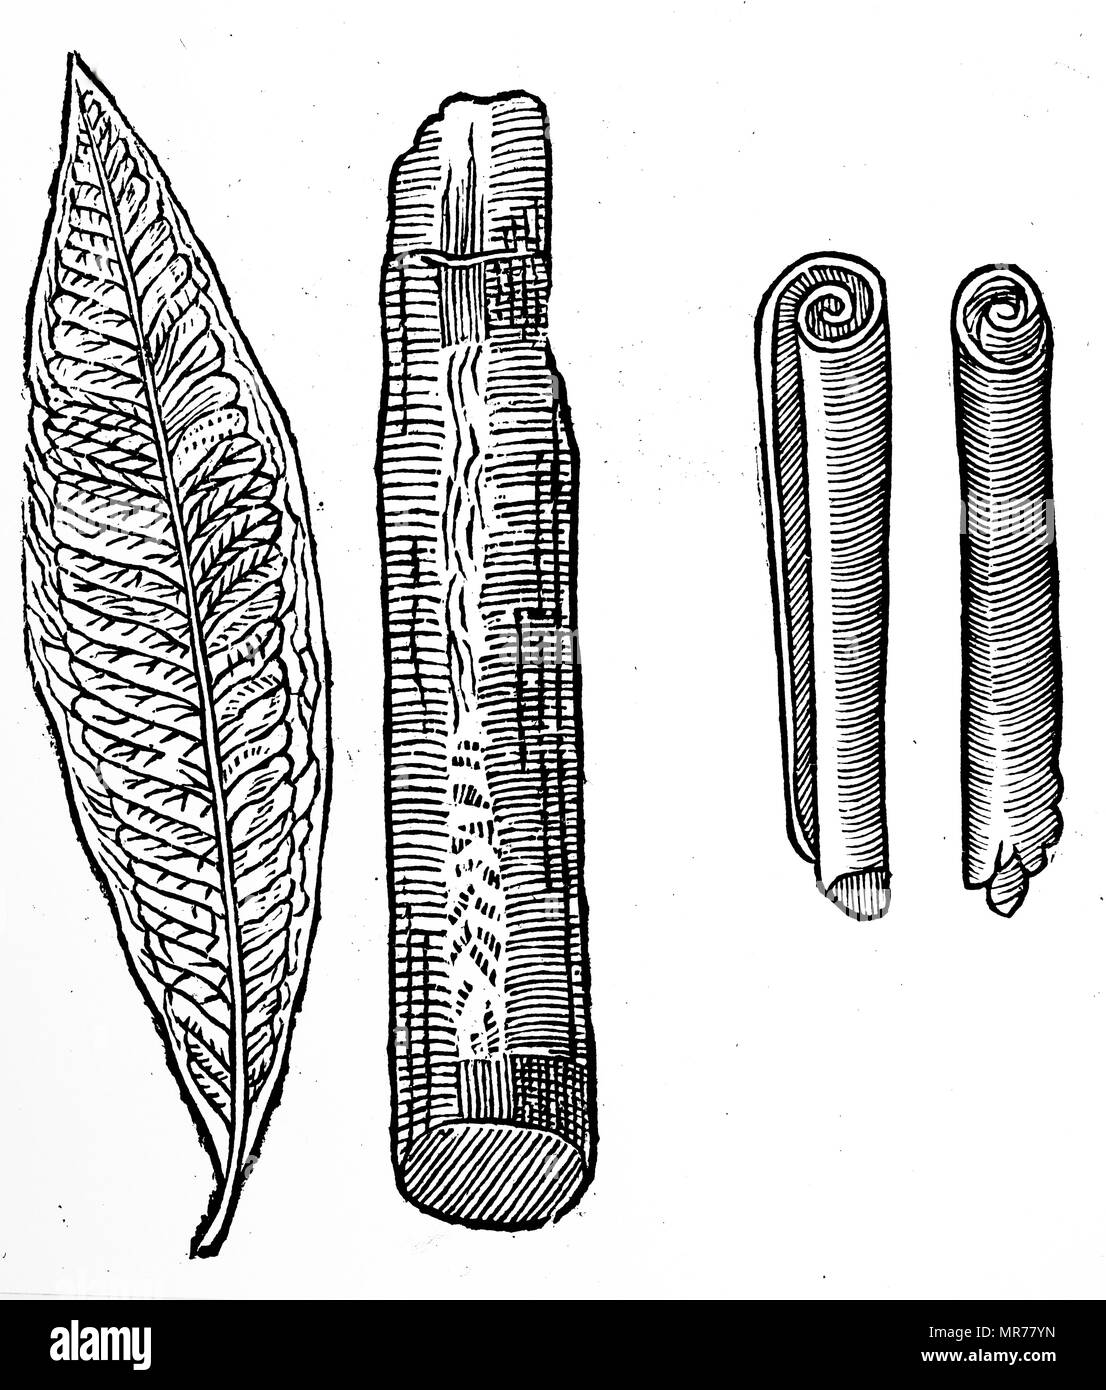 Engraving depicting a cinnamon leaf, twig, and rolled sticks. Dated 17th century - Stock Image